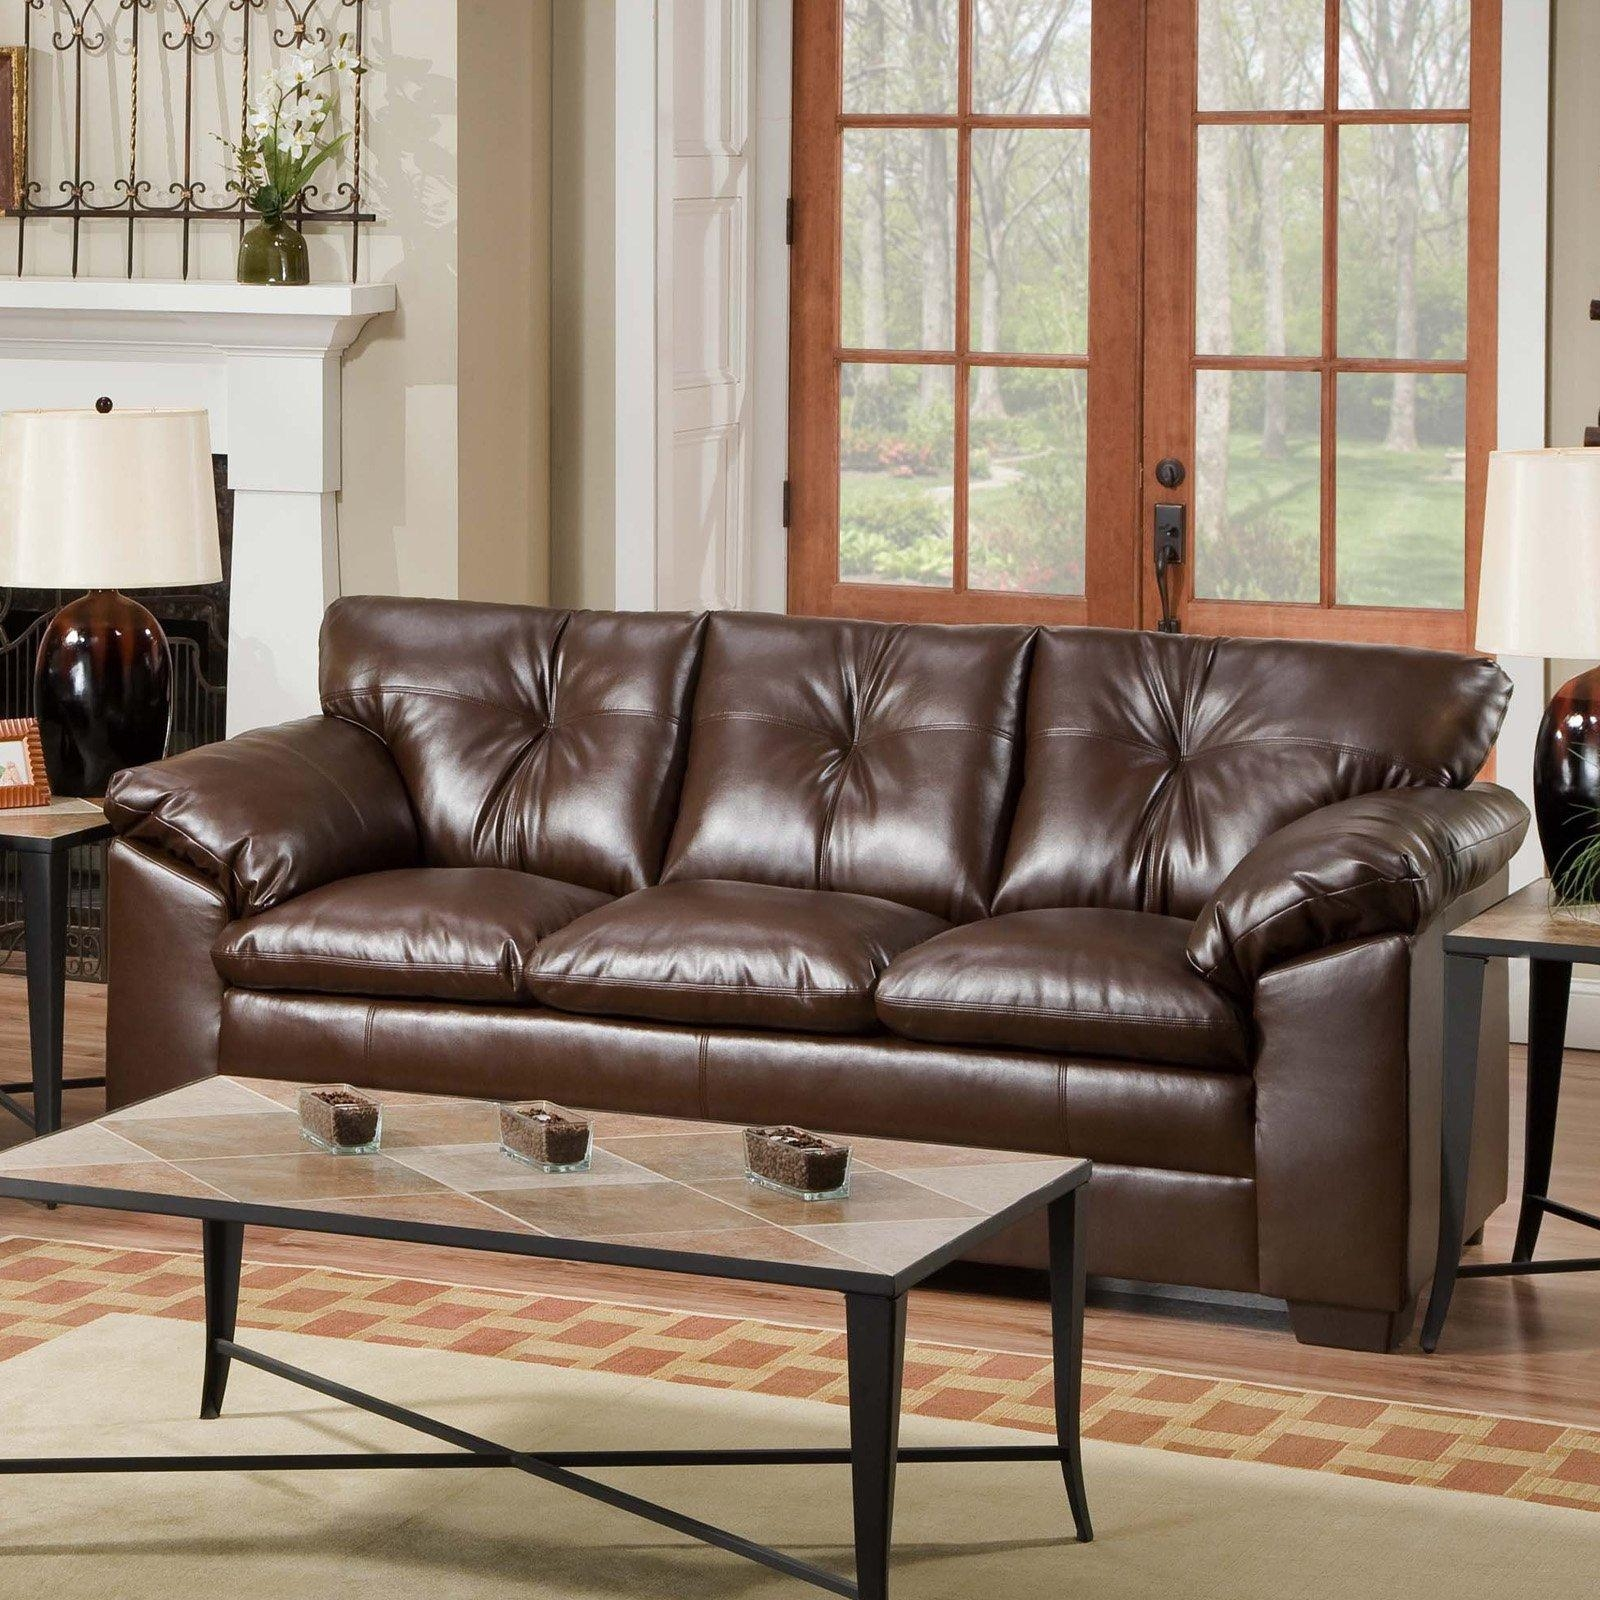 Pictures Of Living Room With Brown Leather Couch – Creditrestore With Simmons Bonded Leather Sofas (View 11 of 20)